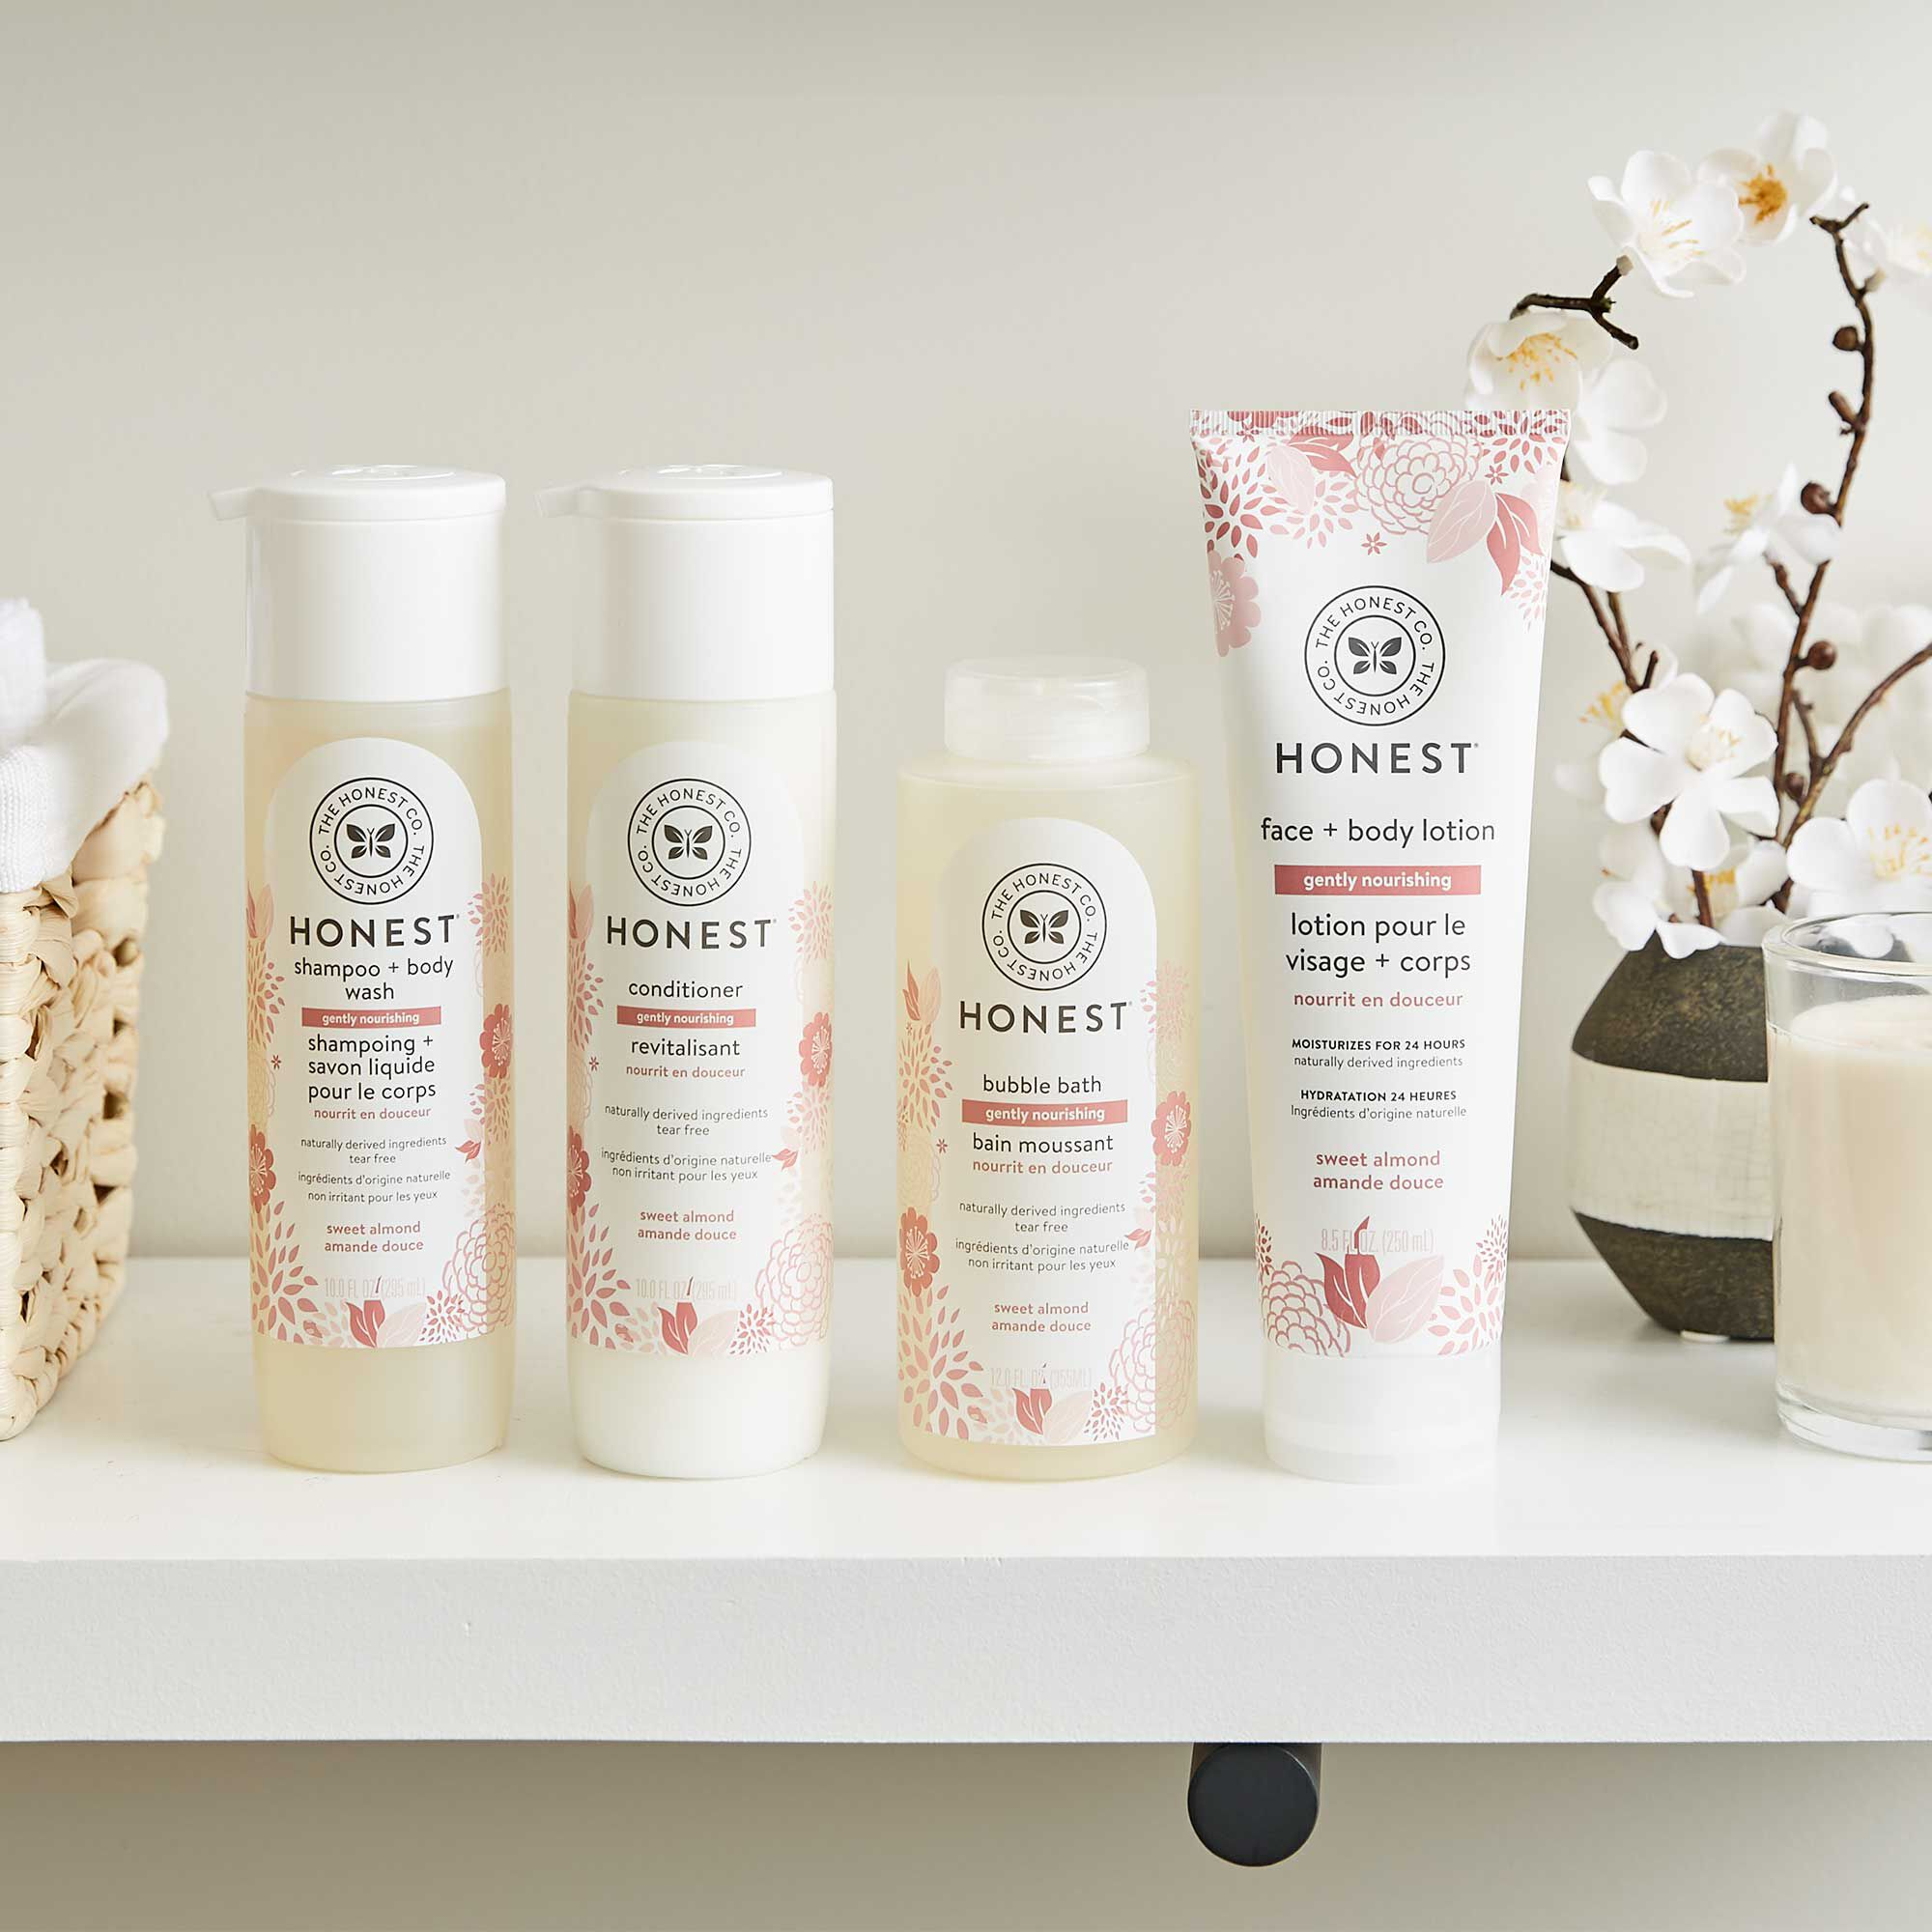 Gently Nourishing Bathtime Routine Kit